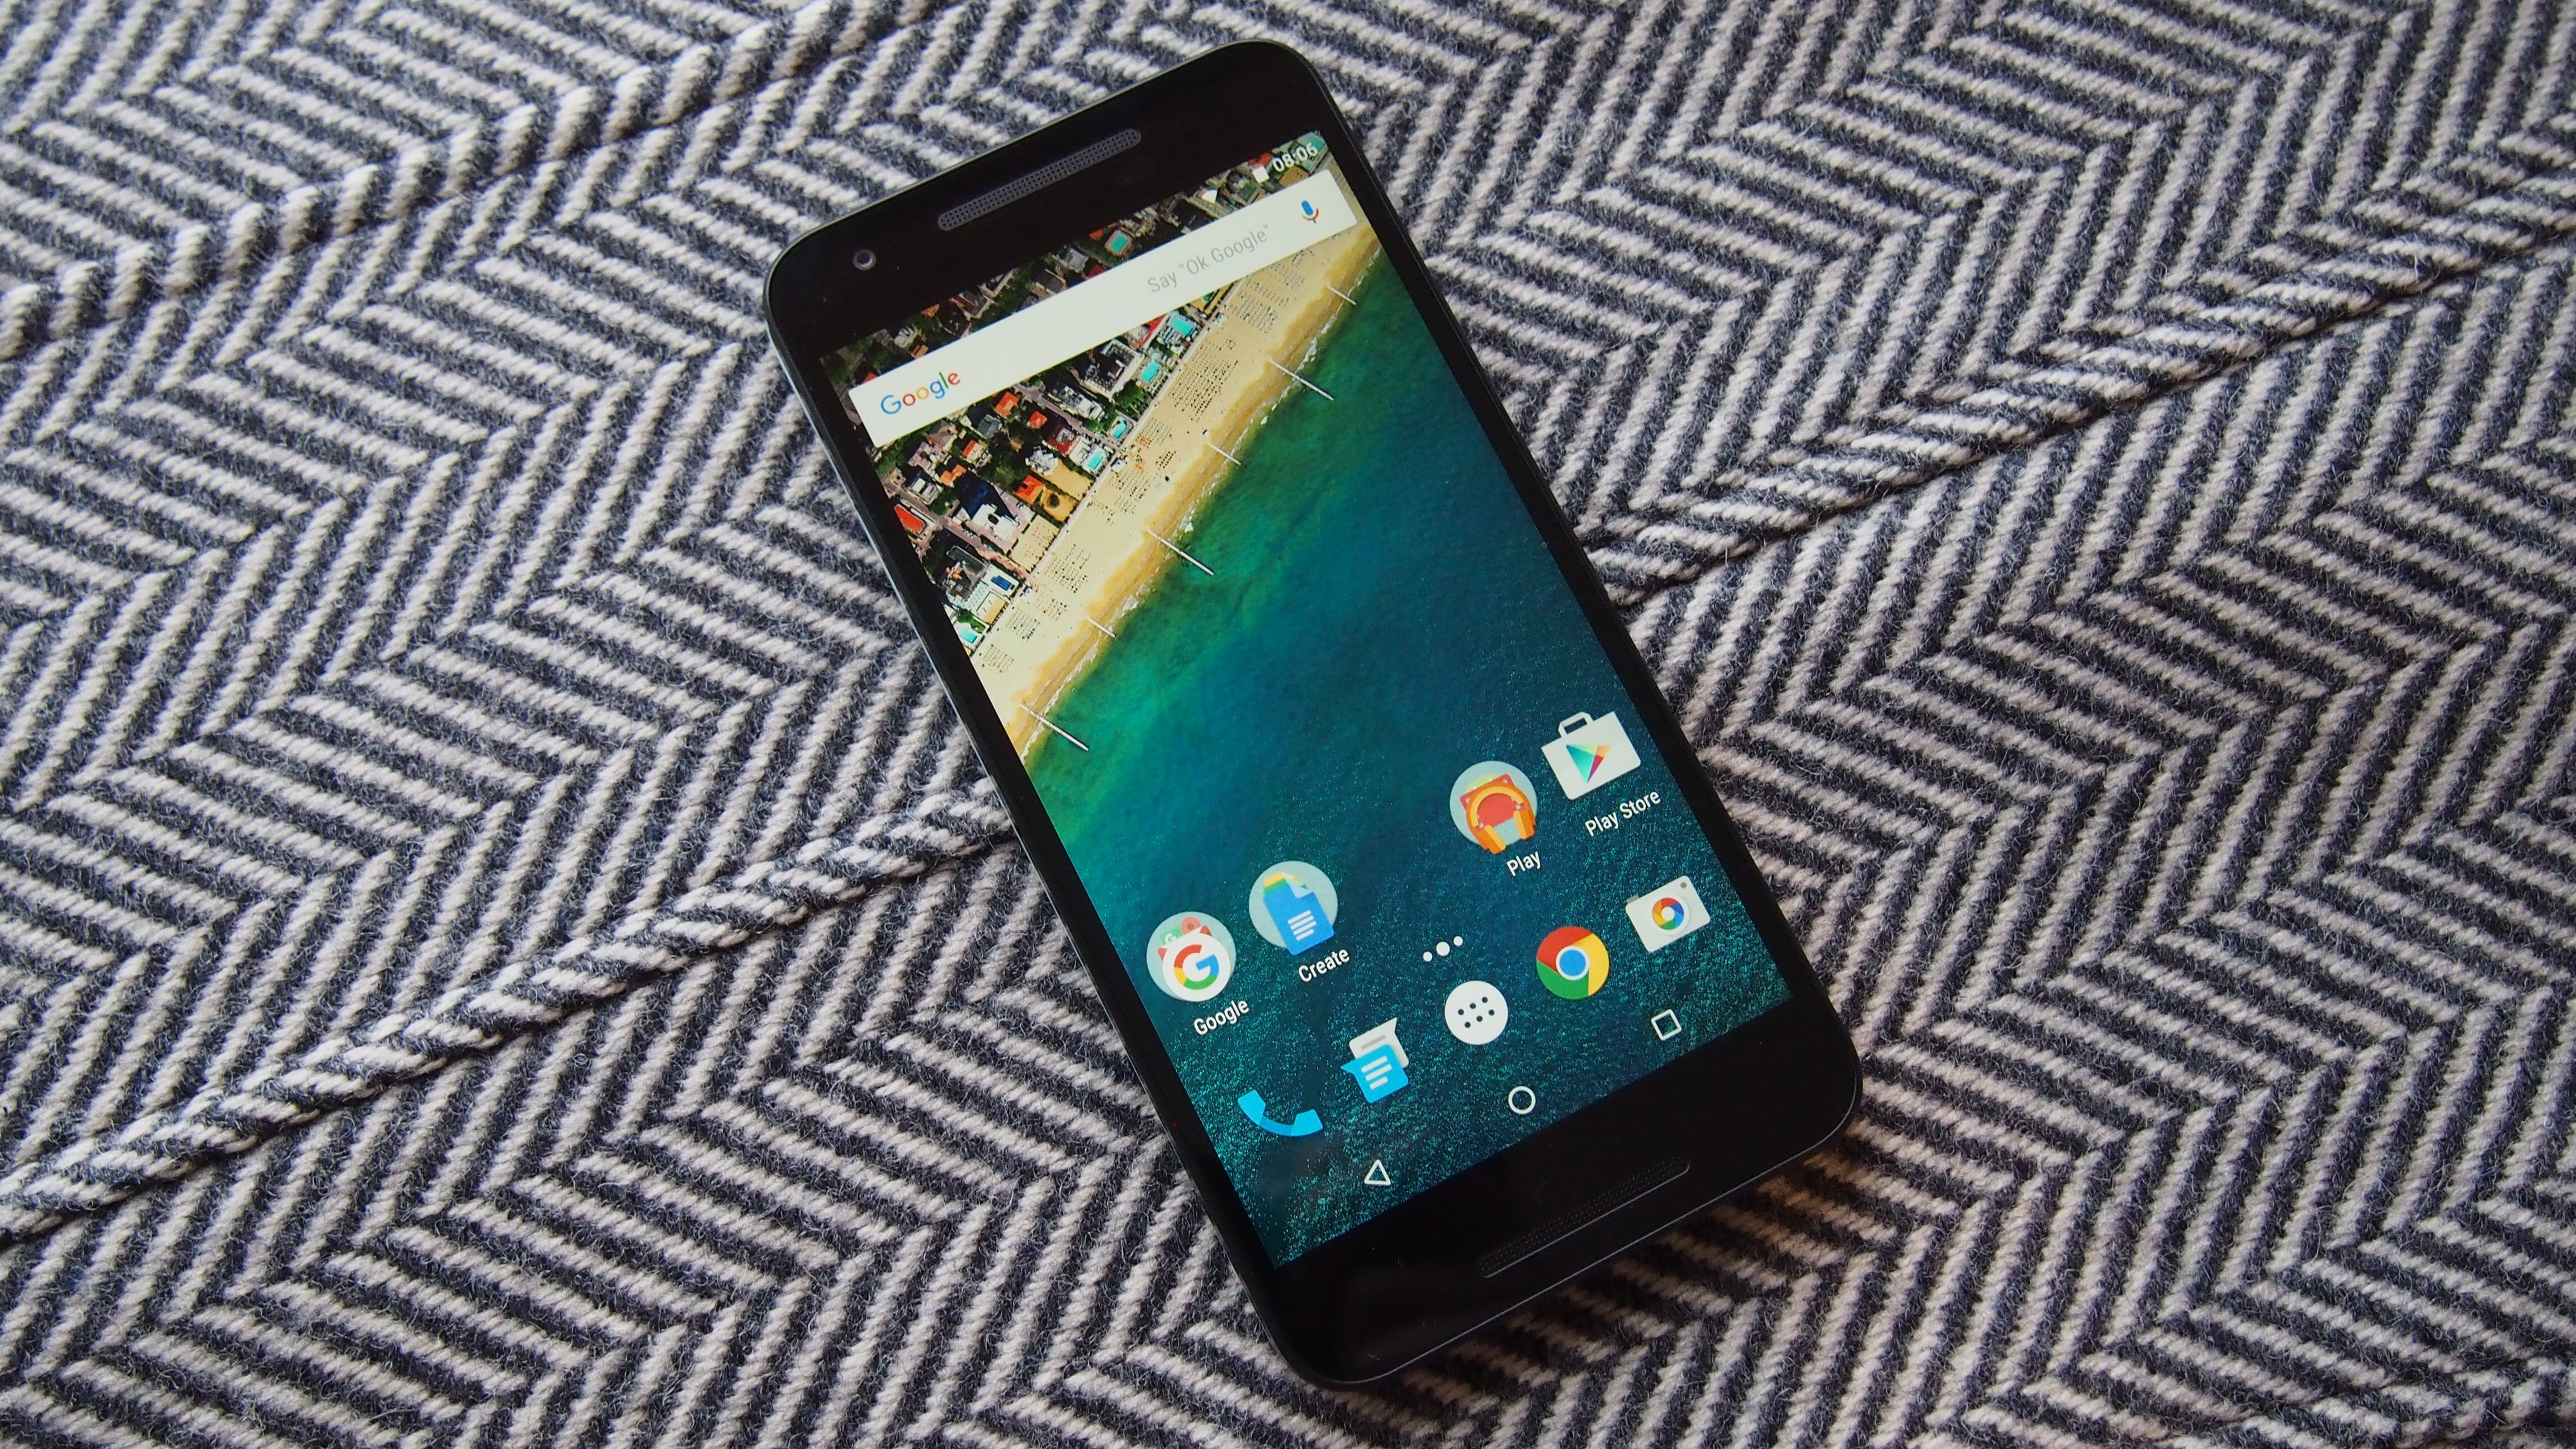 Nexus 5X review: Time to move on from Google's great budget